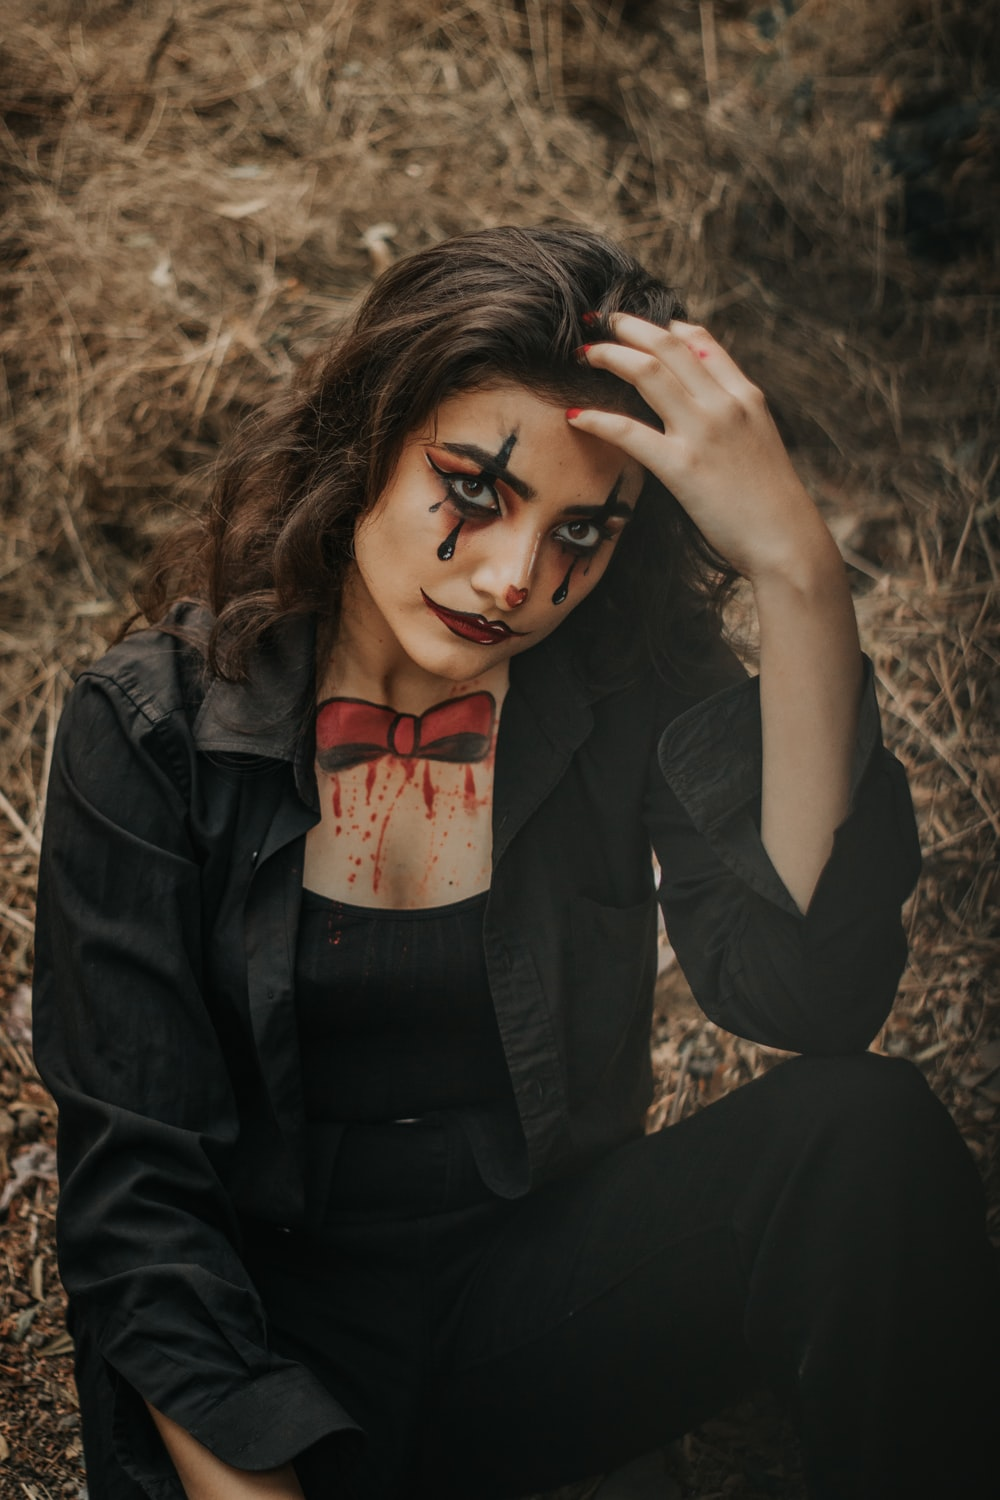 woman wearing black collared button-up long-sleeved shirt with Joker paint on face sitting while touching her head